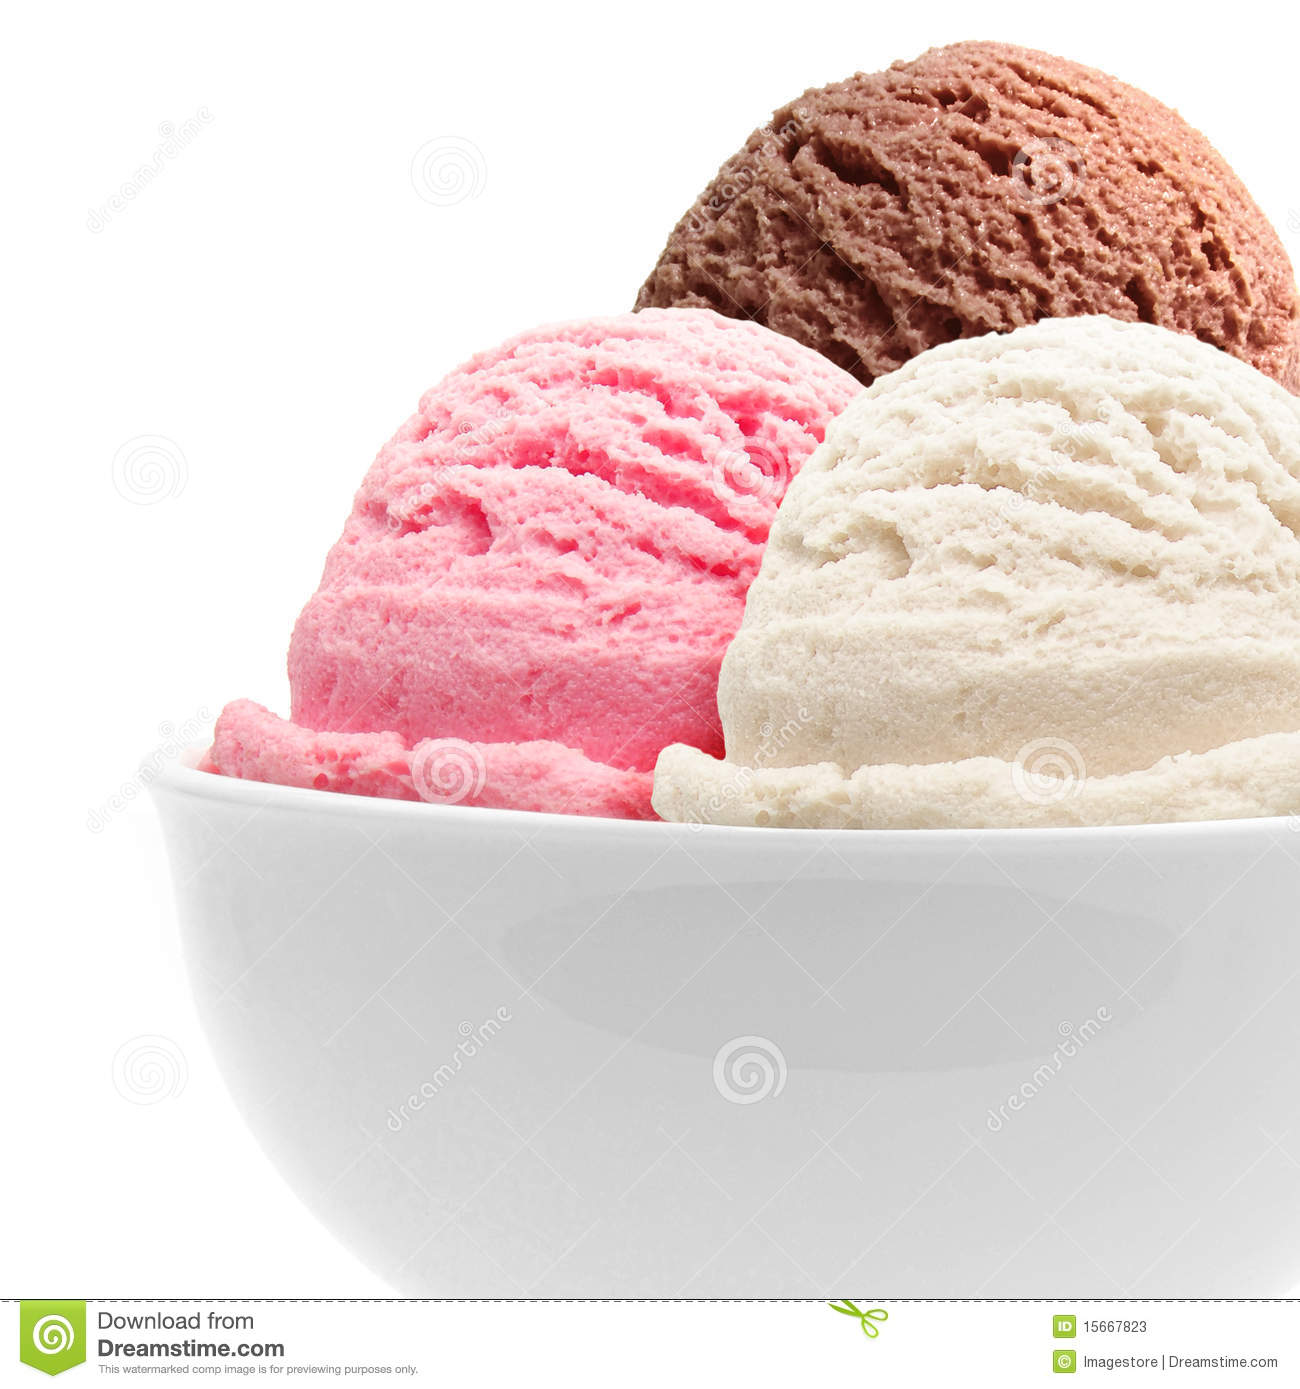 Three scoops of chocolate, strawberry and vanilla ice cream in bowl.